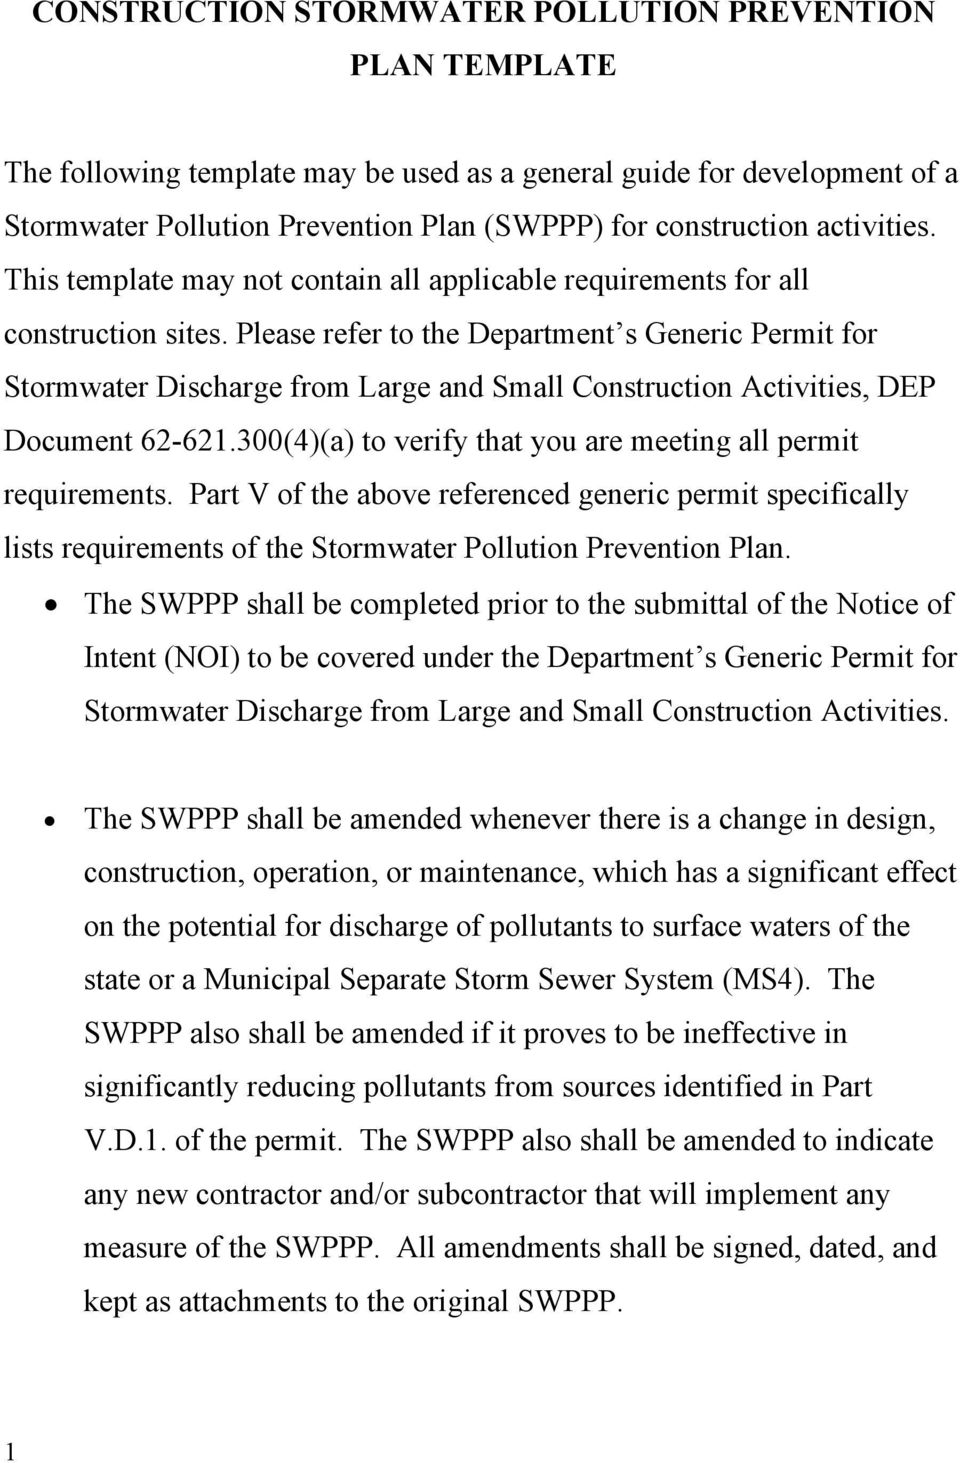 Please refer to the Department s Generic Permit for Stormwater Discharge from Large and Small Construction Activities, DEP Document 62-621.